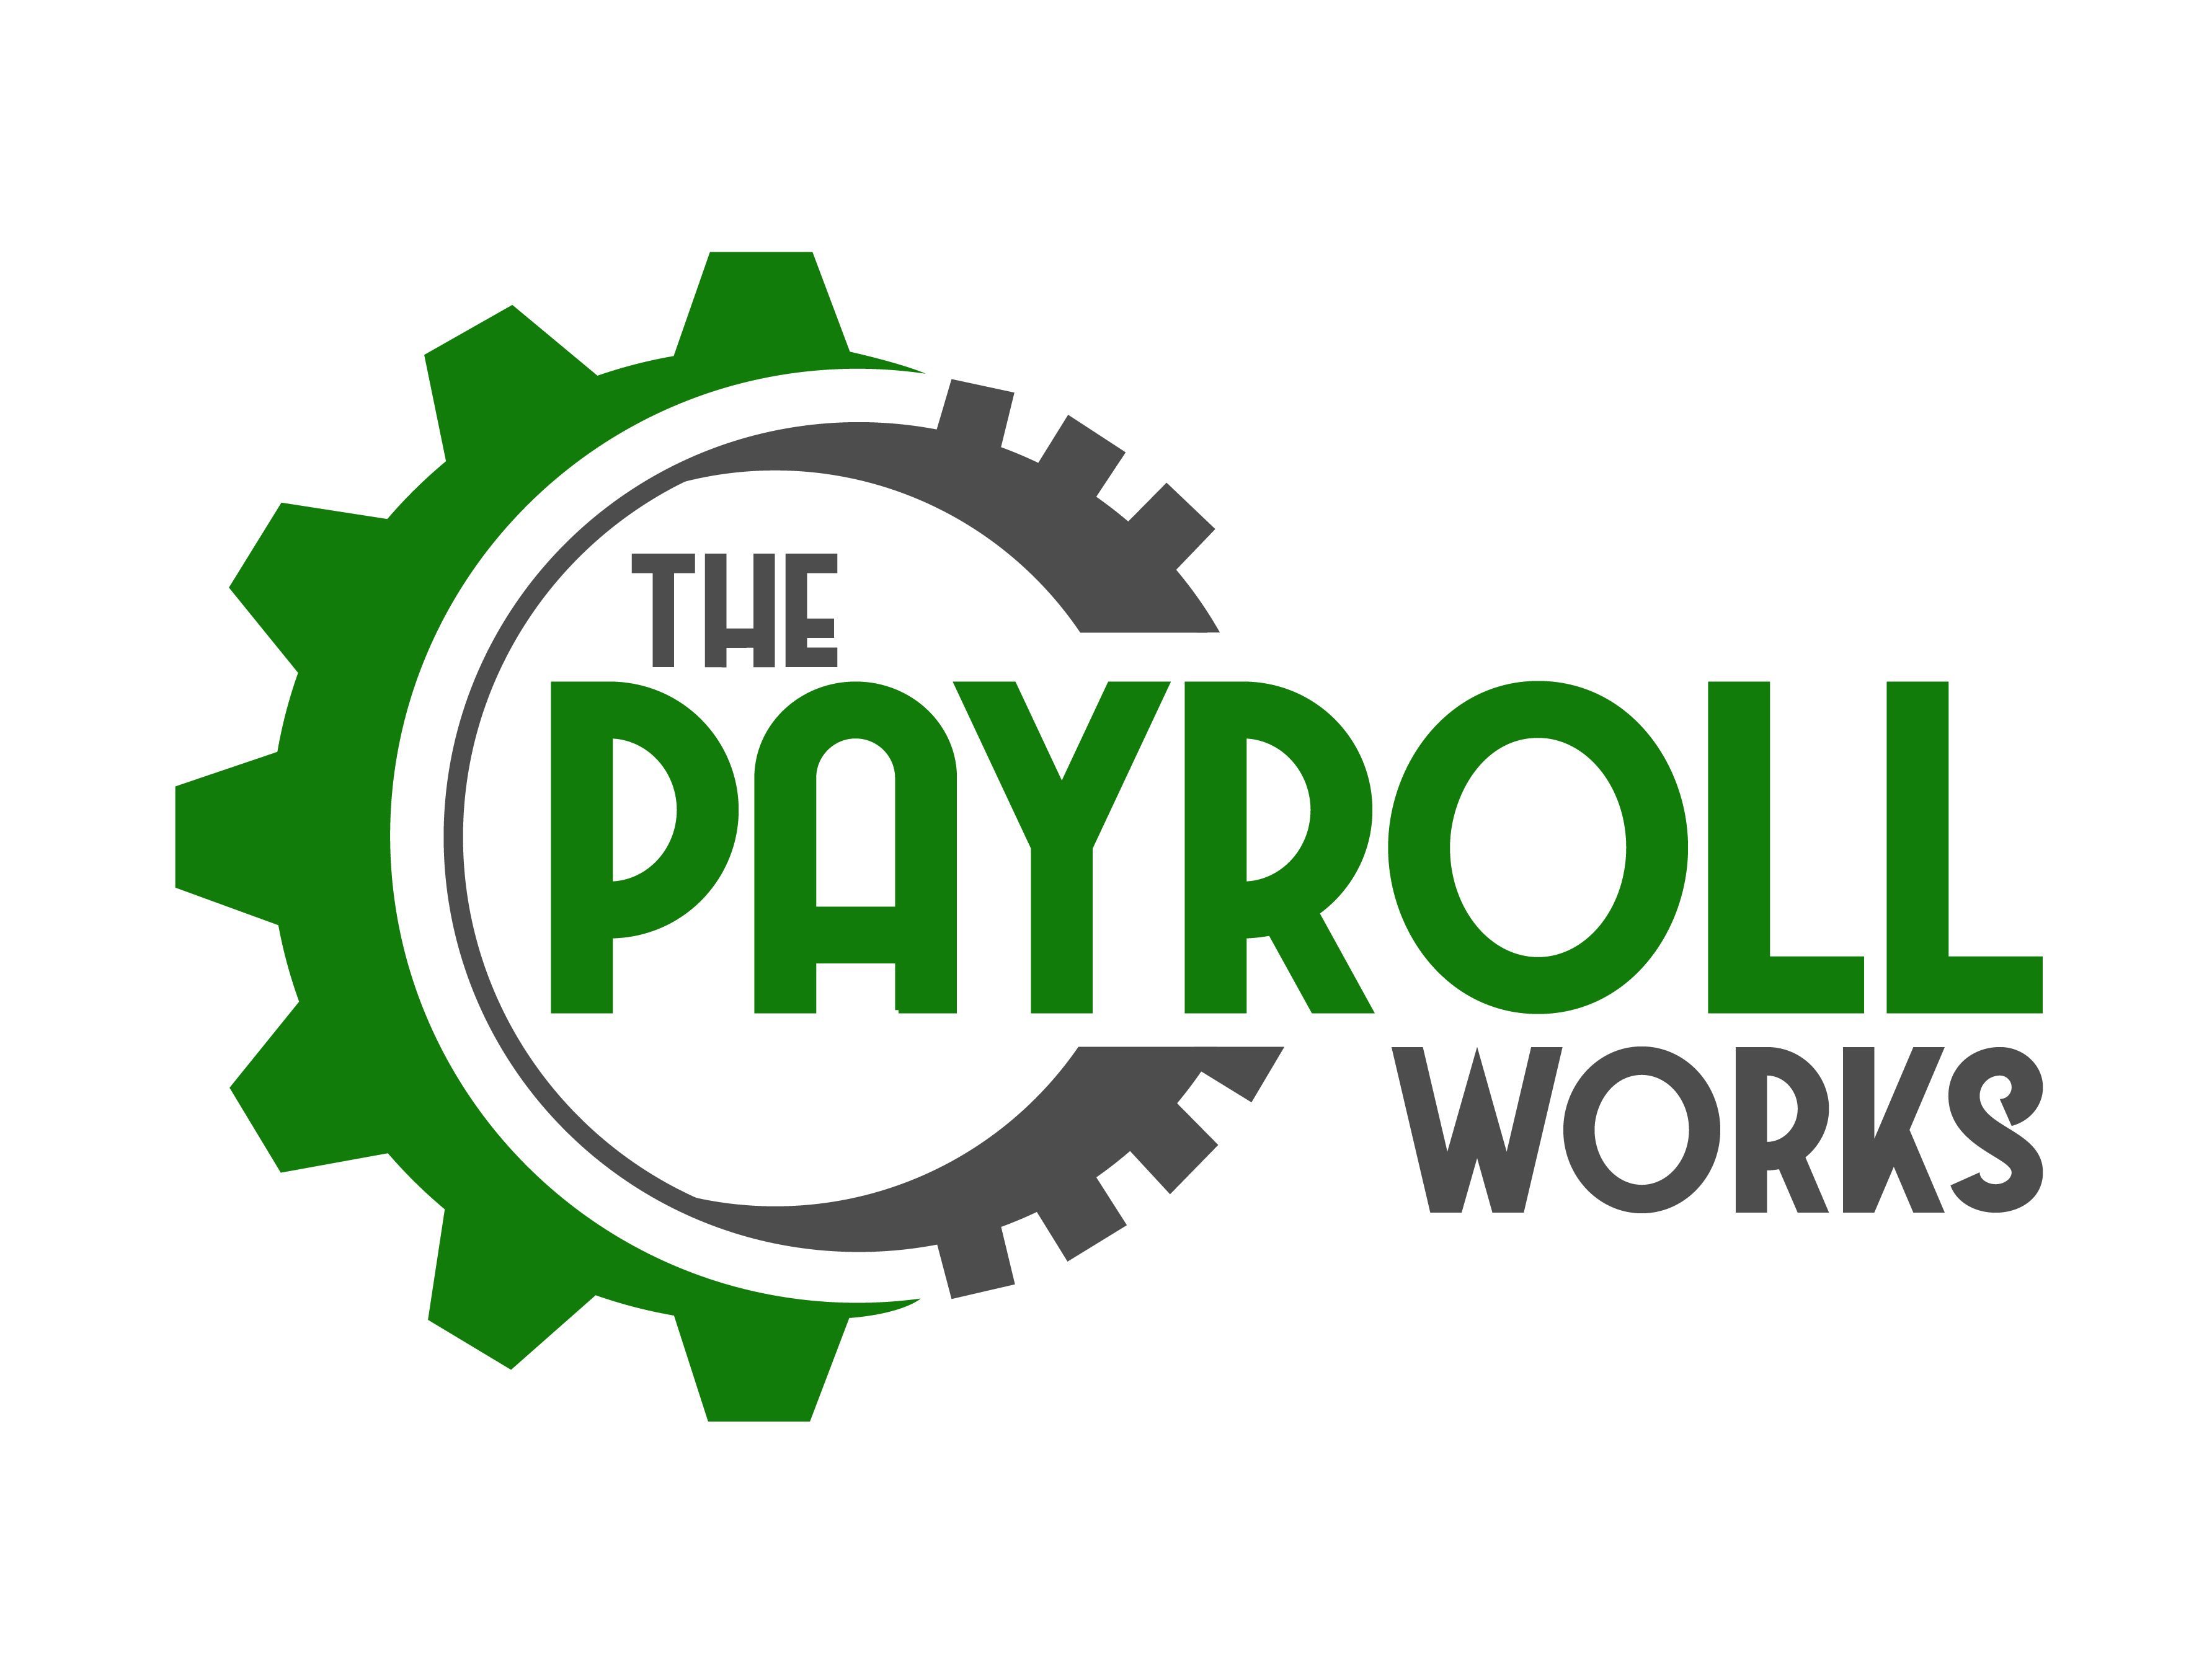 Logo Design by Rob King - Entry No. 122 in the Logo Design Contest Captivating Logo Design for The Payroll Works.